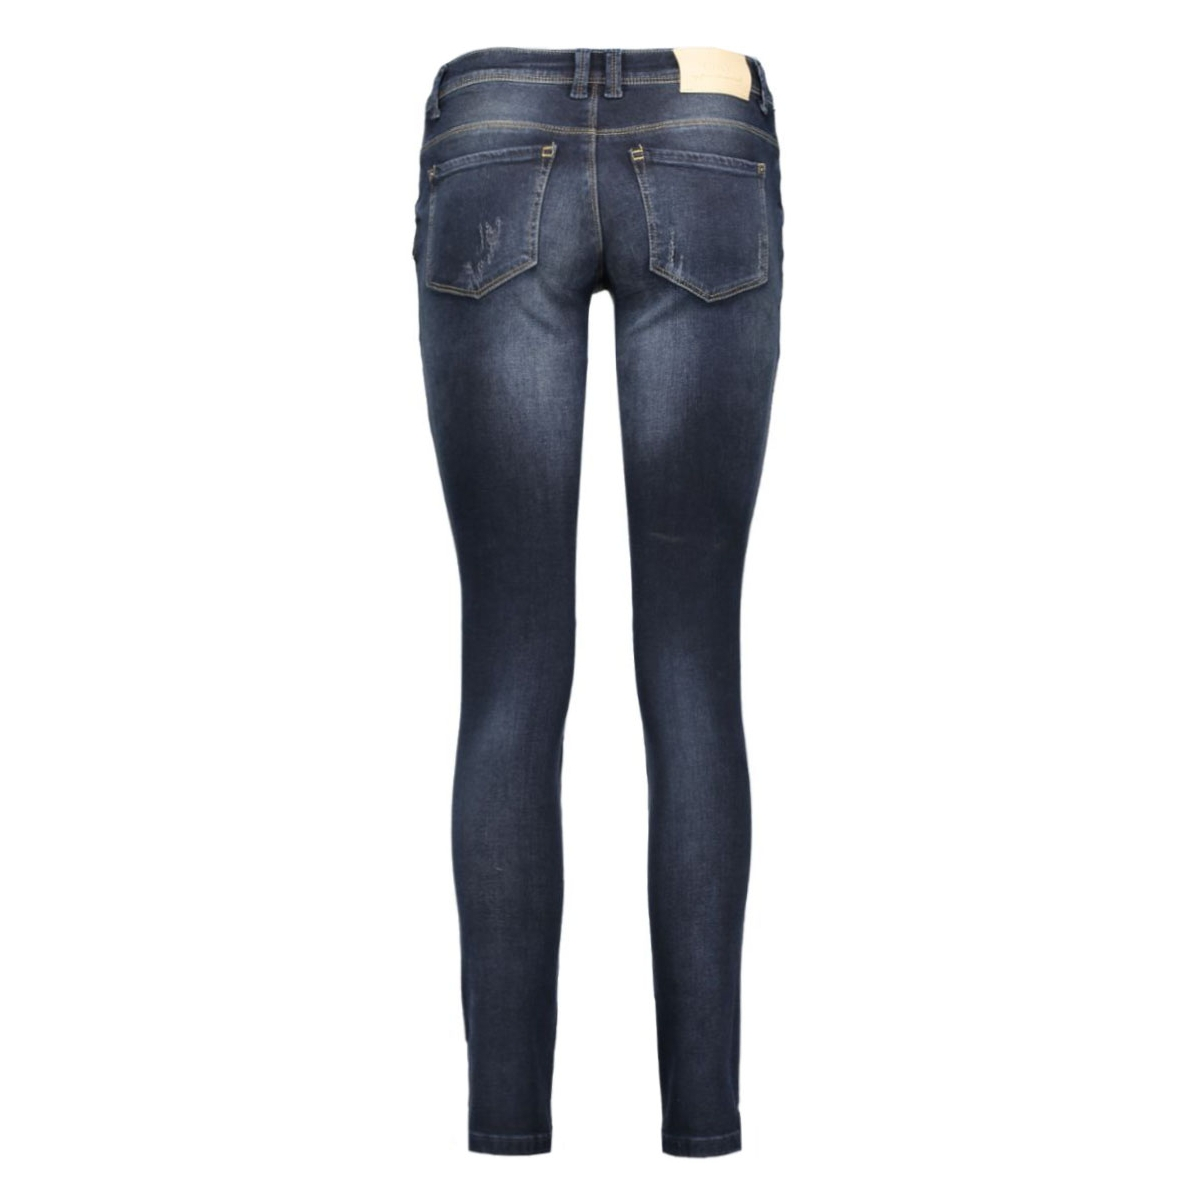 onlcoral skinny jeans rea9335 only jeans mbd